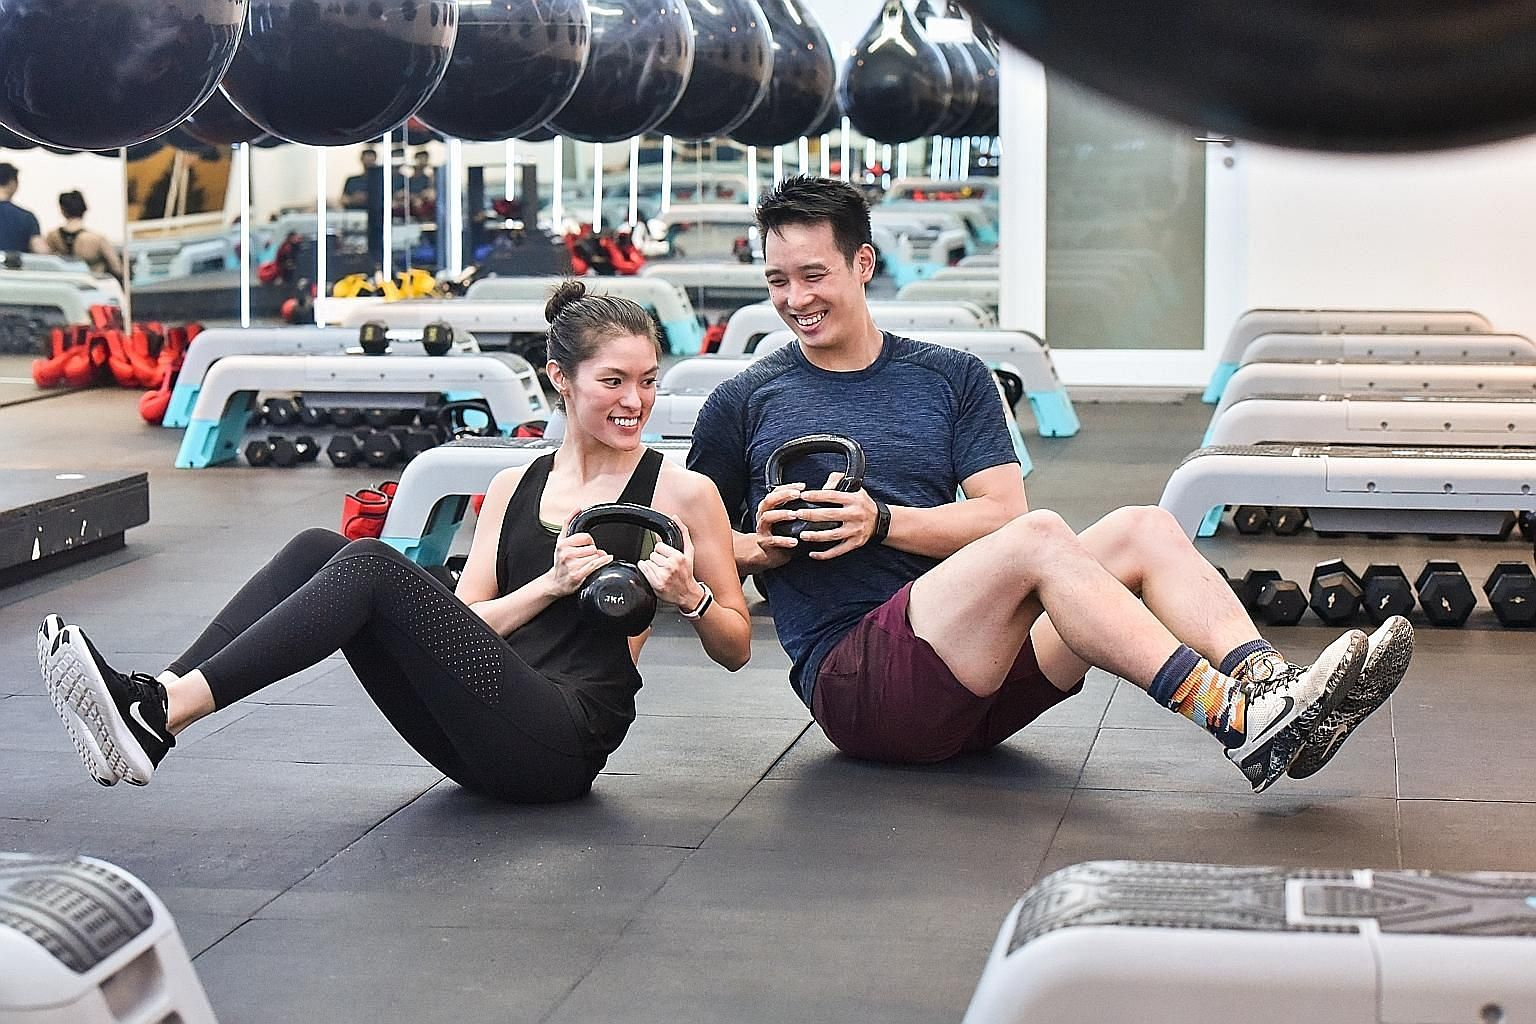 Ms Victoria Martin-Tay has a master's degree from Harvard University, but she quit the engineering field to start fitness and boxing studio bo0m with her husband Bryan Tay, a Princeton University graduate and former Singapore national swimmer, in Feb